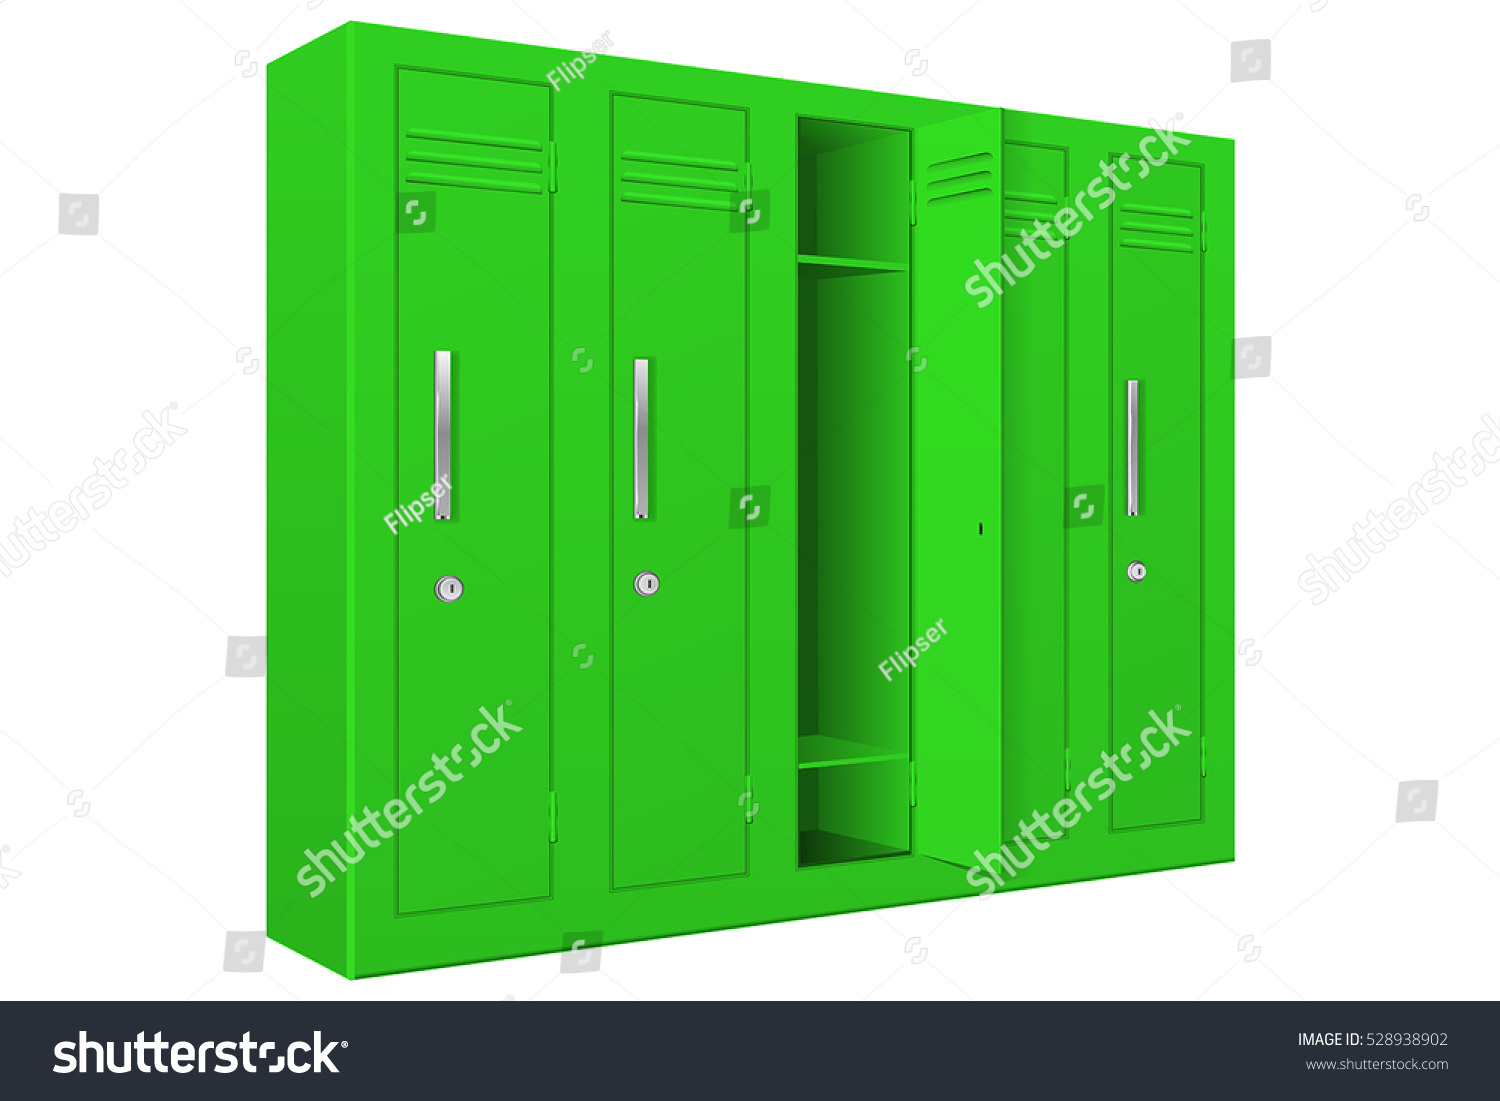 Green School Lockers With Open Door Vector Illustration Isolated On White Background